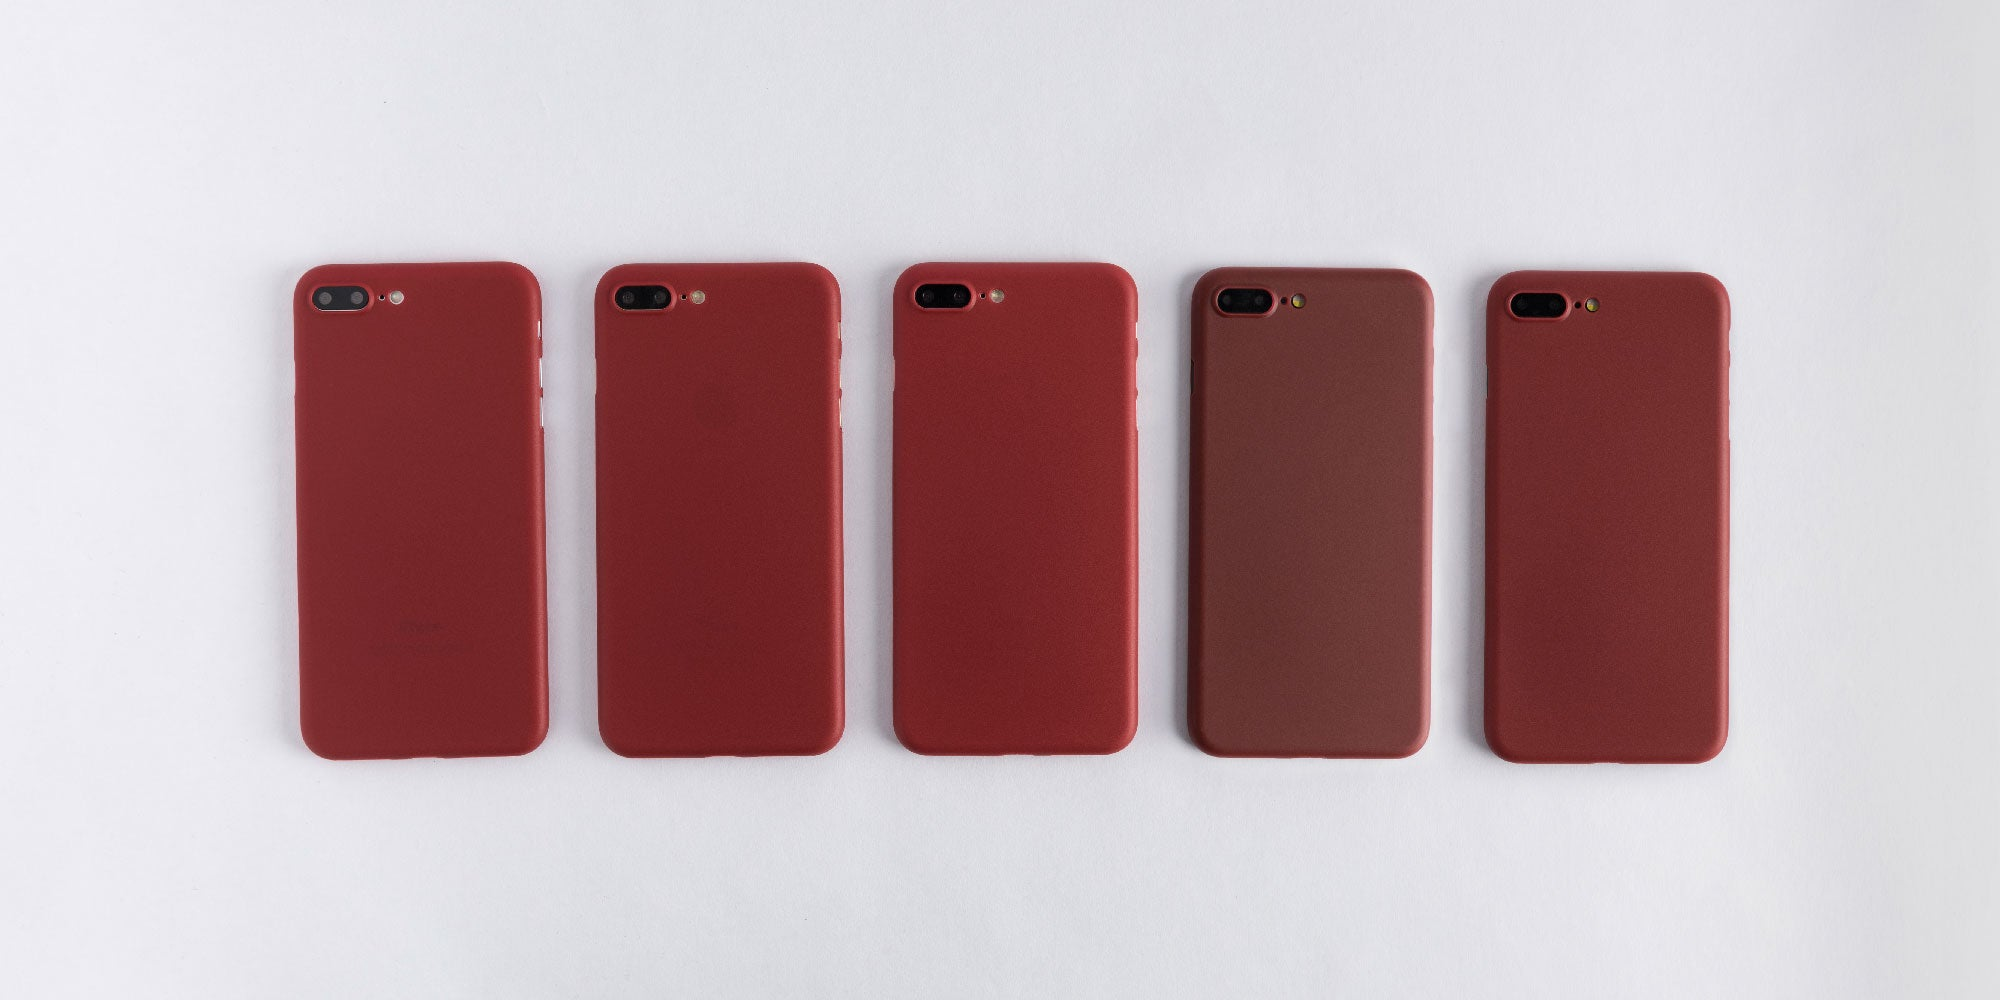 totallee burgundy red case on Rose Gold, Silver, Gold, Black, and Jet Black iPhone 7